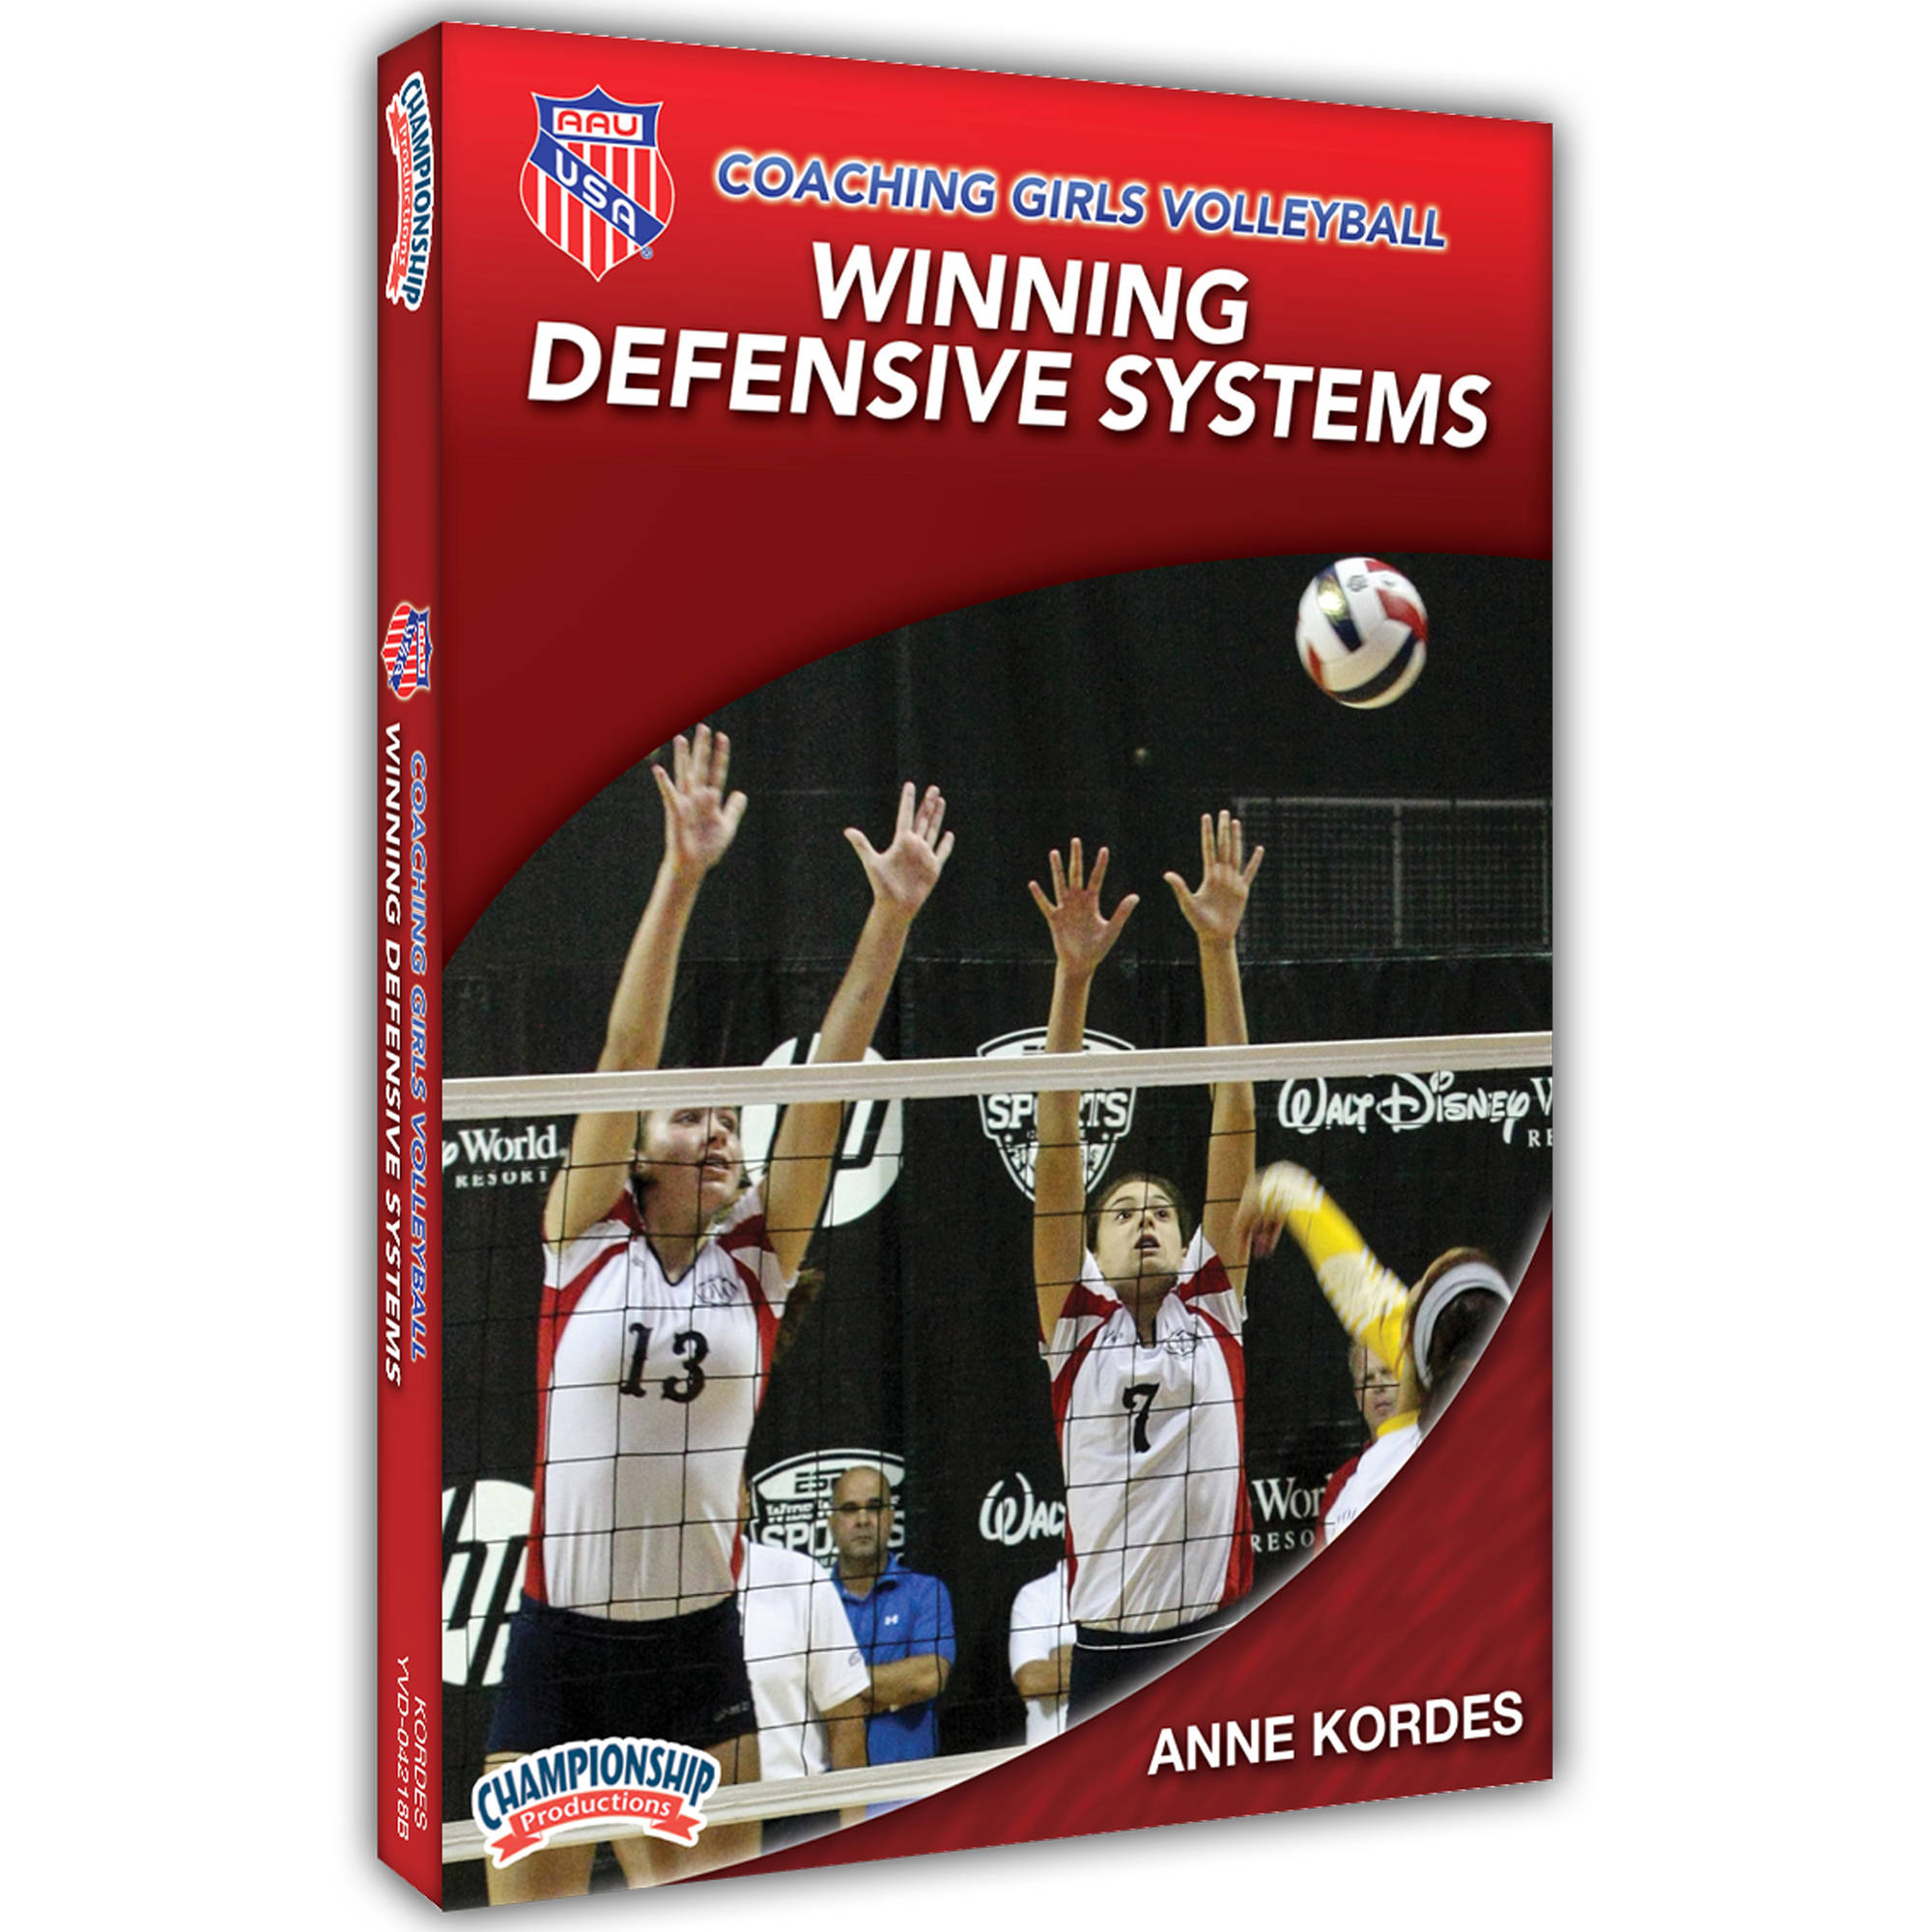 AAU Coaching Girls Volleyball Series: Winning Defensive Systems DVD by Championship Productions